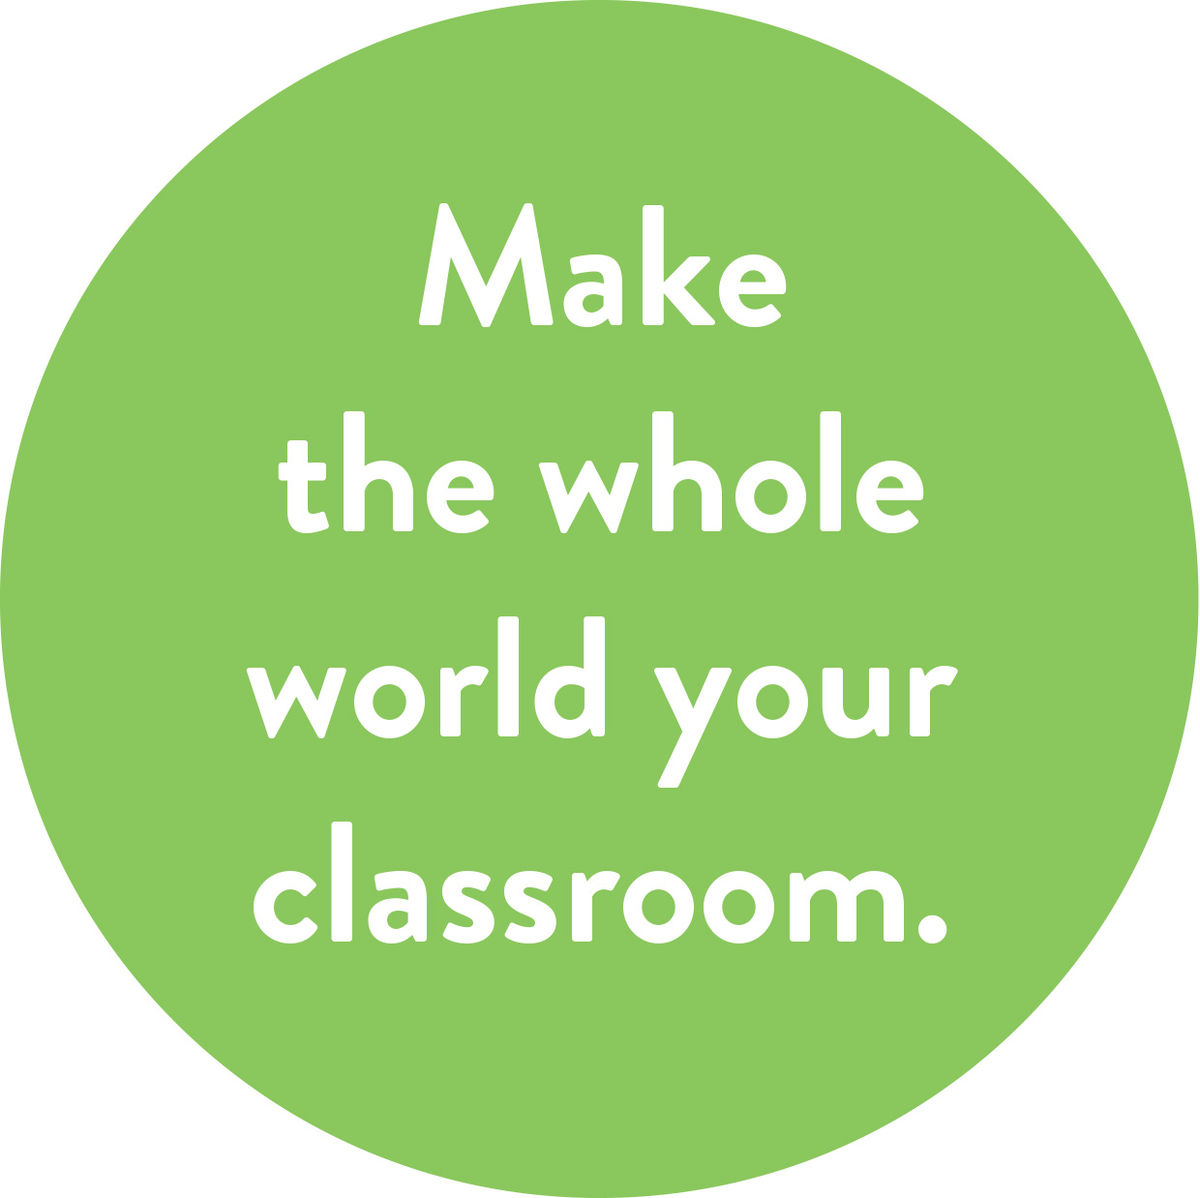 Make the whole world your classroom